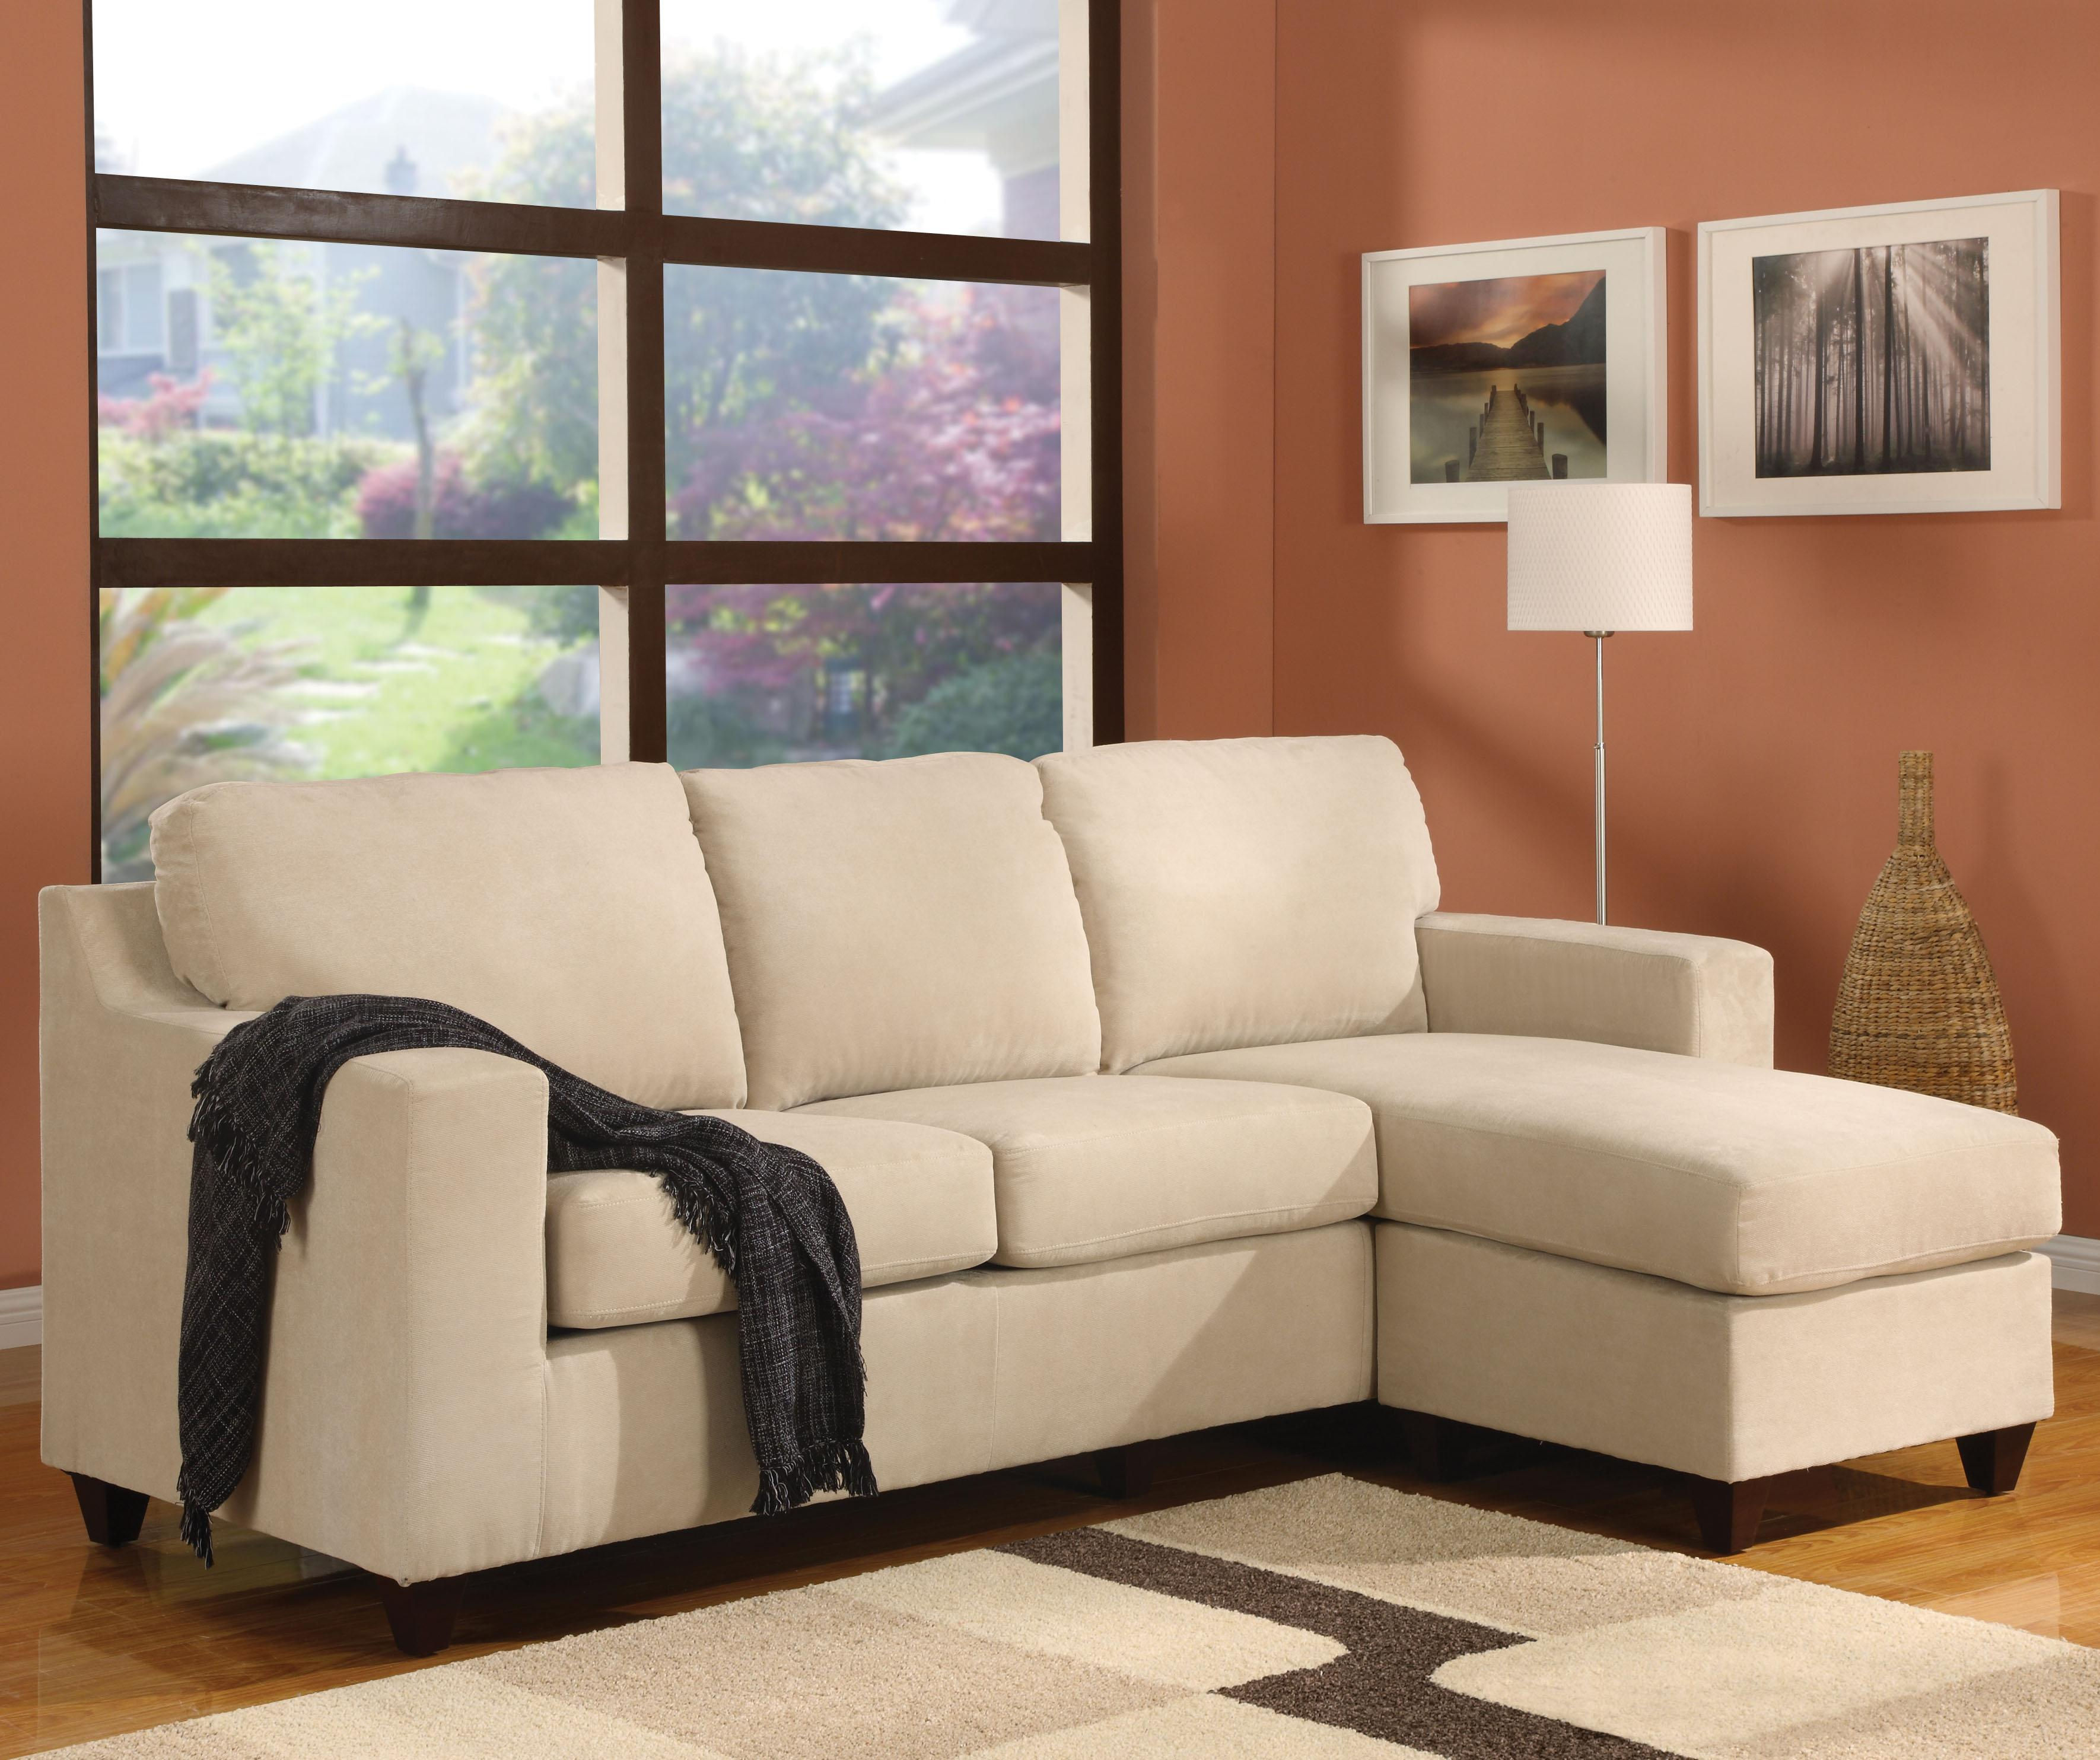 Acme Furniture 5913 05913A Vogue Reversible Chaise Two Piece Sectional Nassau Furniture Sofa